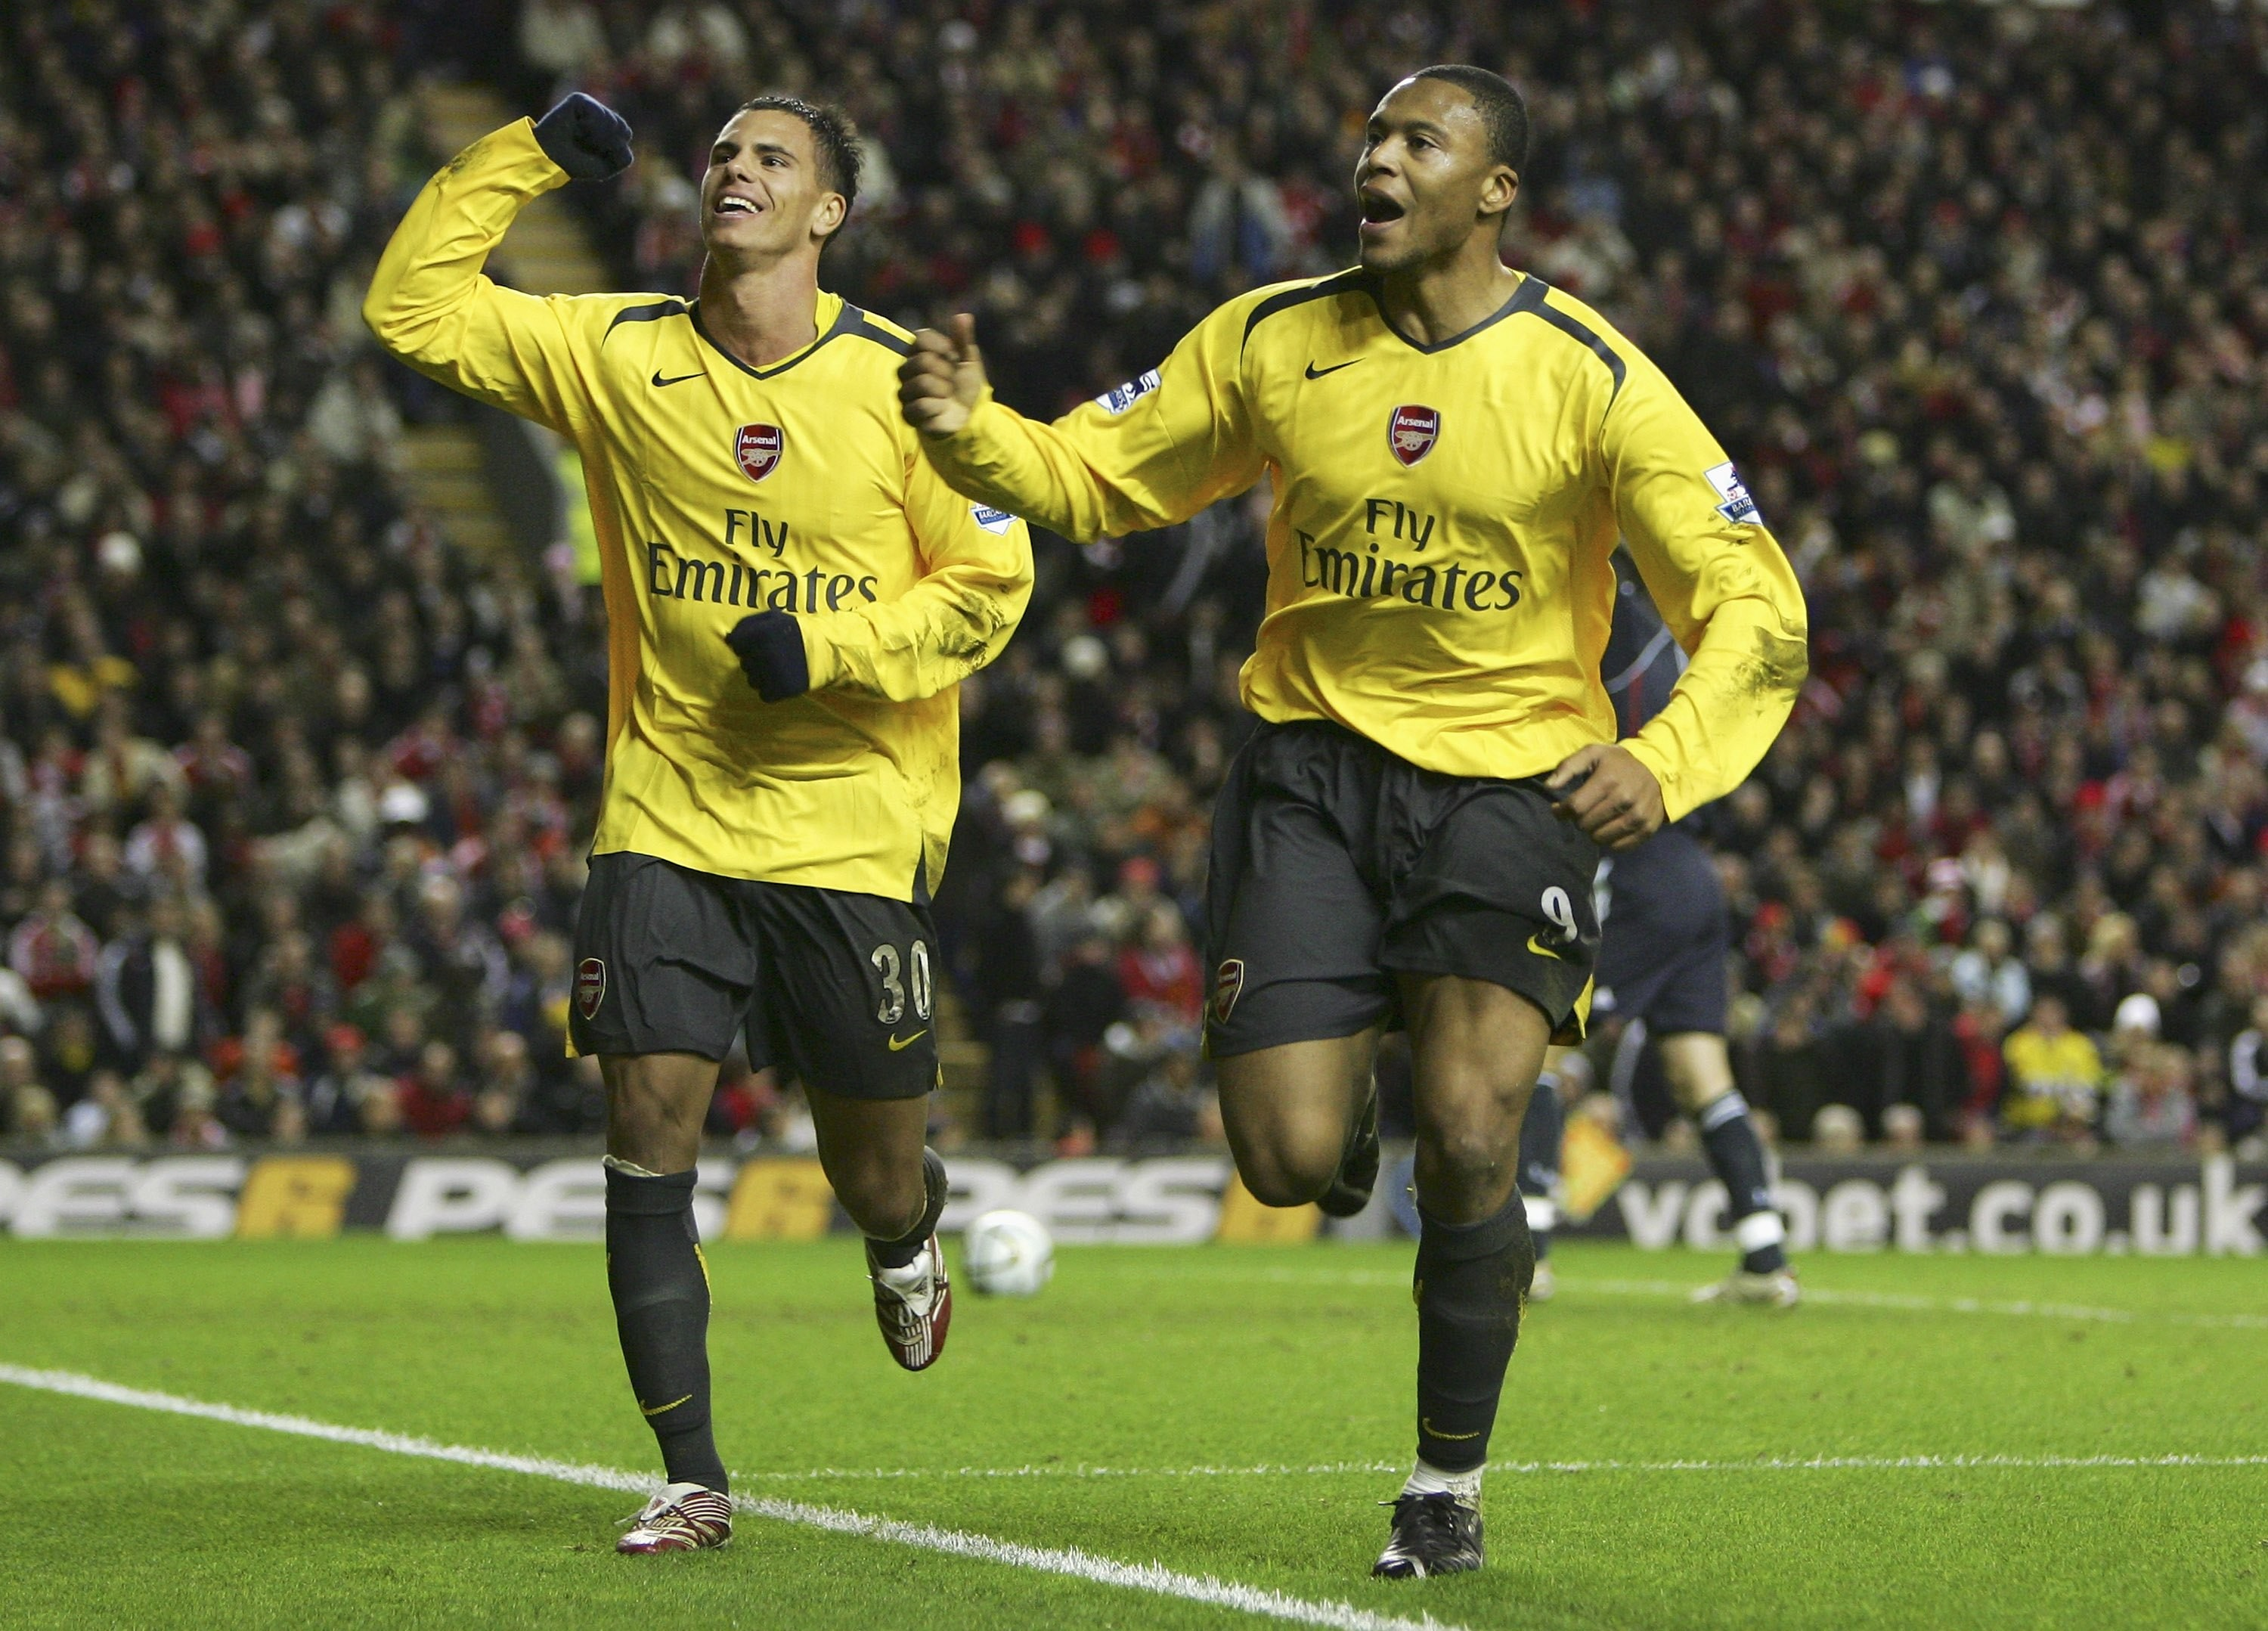 LIVERPOOL, UNITED KINGDOM - JANUARY 09: Julio Baptista (R) of Arsenal celebrates scoring his team's fifth goal to complete his hat trick with team mate Jeremie Aliadiere during the Carling Cup quarter final match between Liverpool and Arsenal at Anfield on January 9, 2007, in Liverpool, England. (Photo by Alex Livesey/Getty Images)